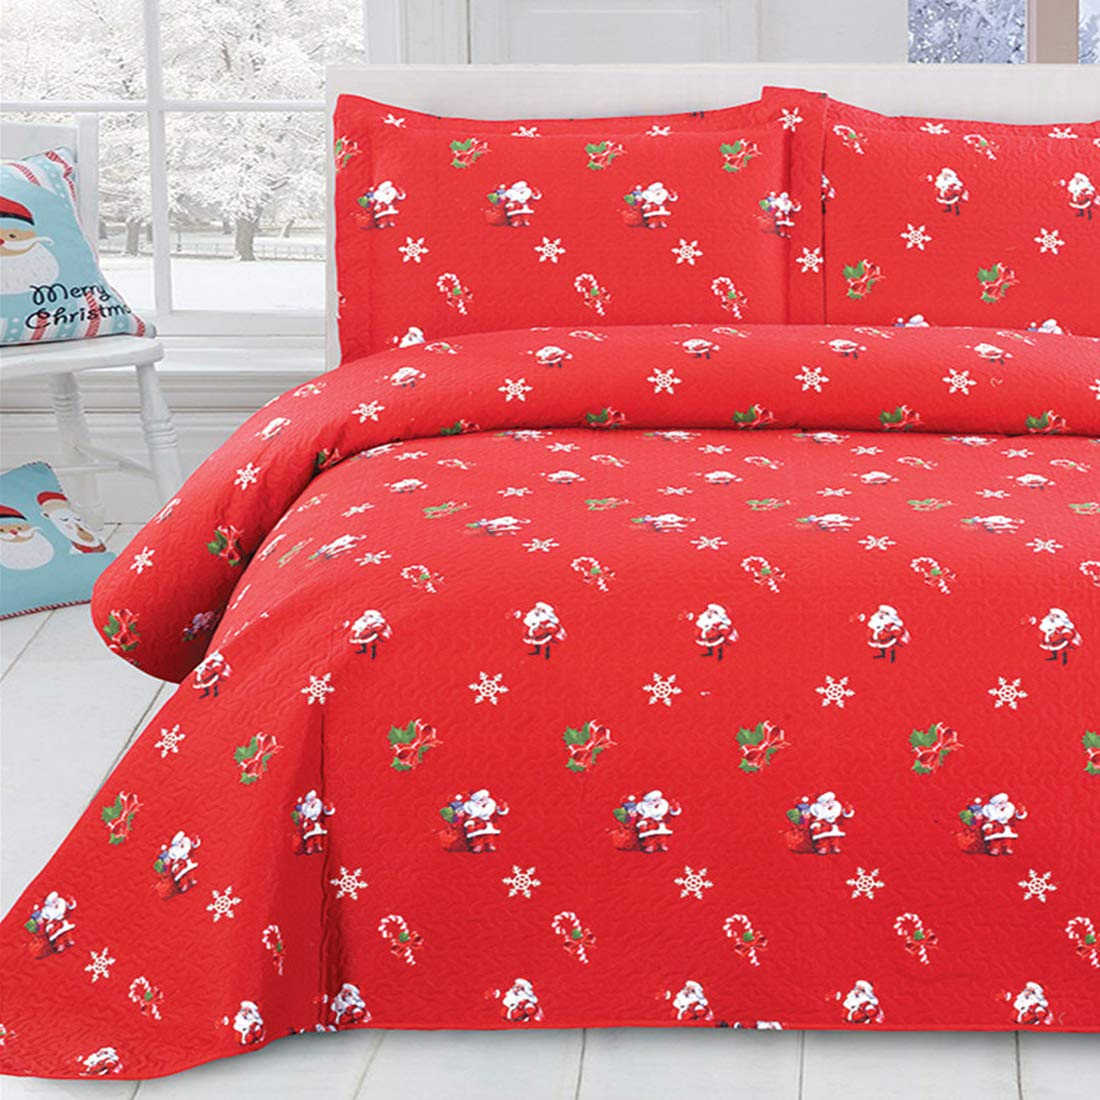 Oliven 3 Pieces Christmas Quilts Full/Queen Size,Lightweight Bedspreads Coverlet Set Full/Queen,Cartoon Christmas Santa Claus Bed Cover Set,Christmas Home Decor Christmas Kids Gifts